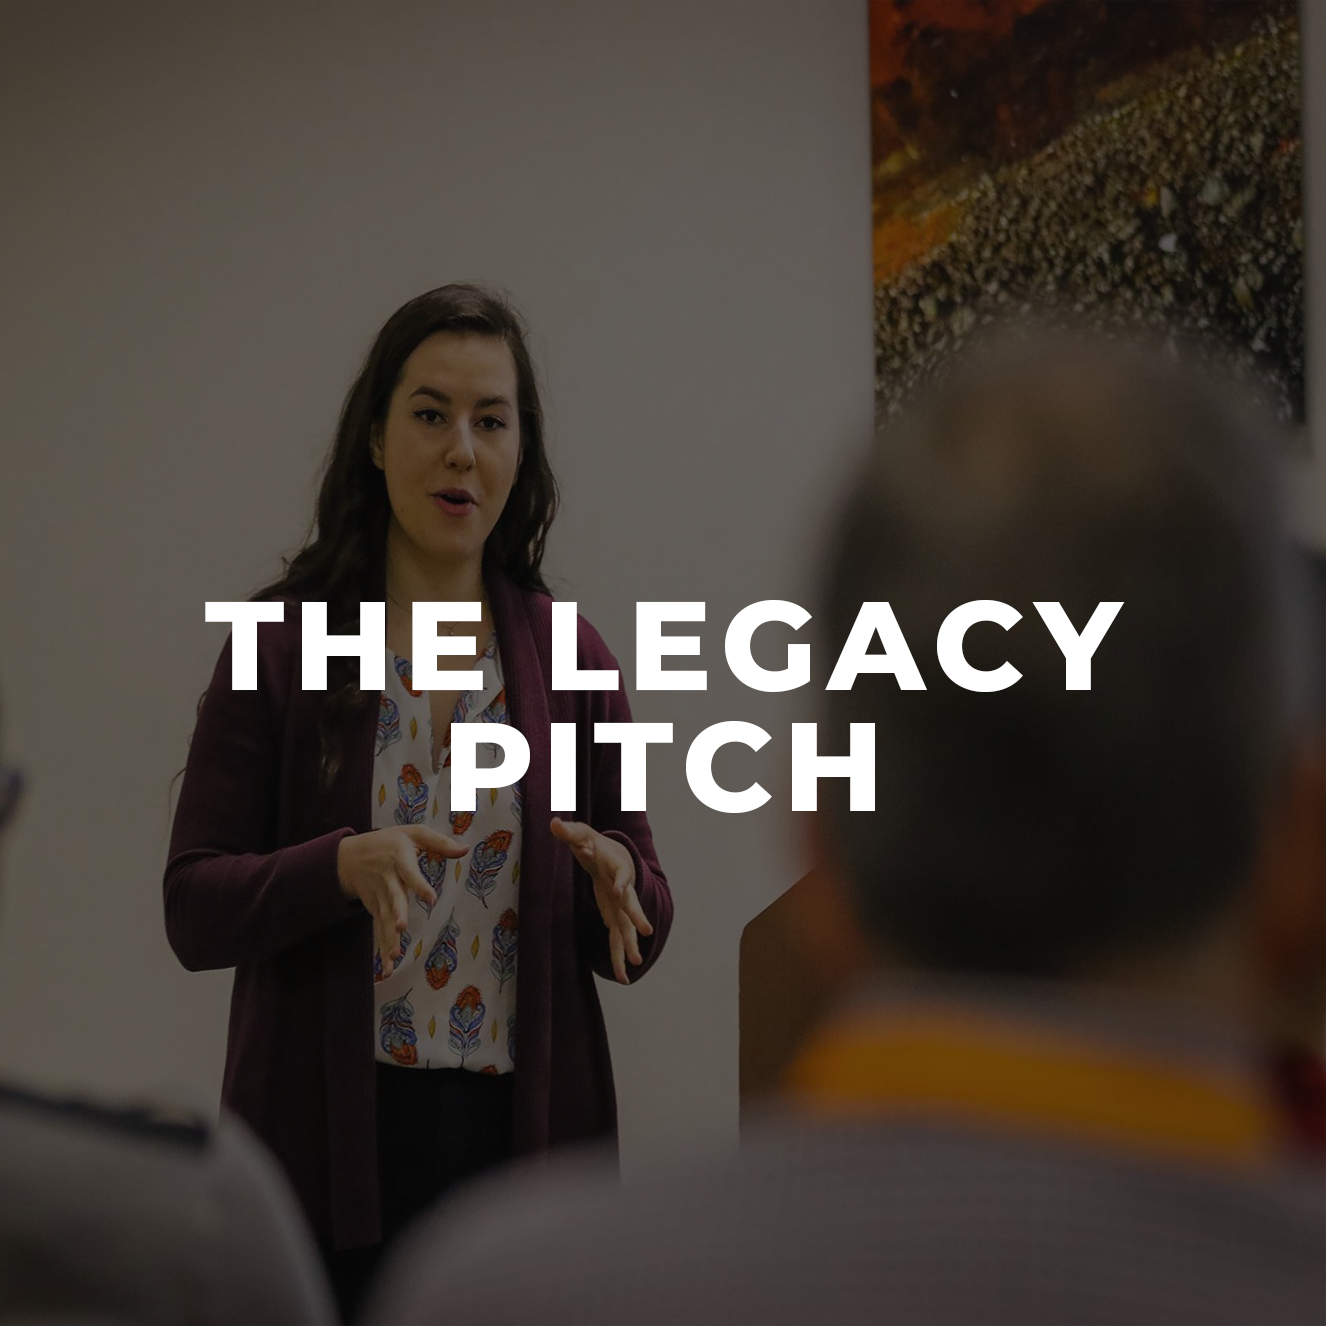 """With high-profile investors as judges willing to invest in the best pitches on the day of, attendees would have the rare chance to pitch to a large audience """"Dragons' Den"""" style while receiving actionable feedback."""